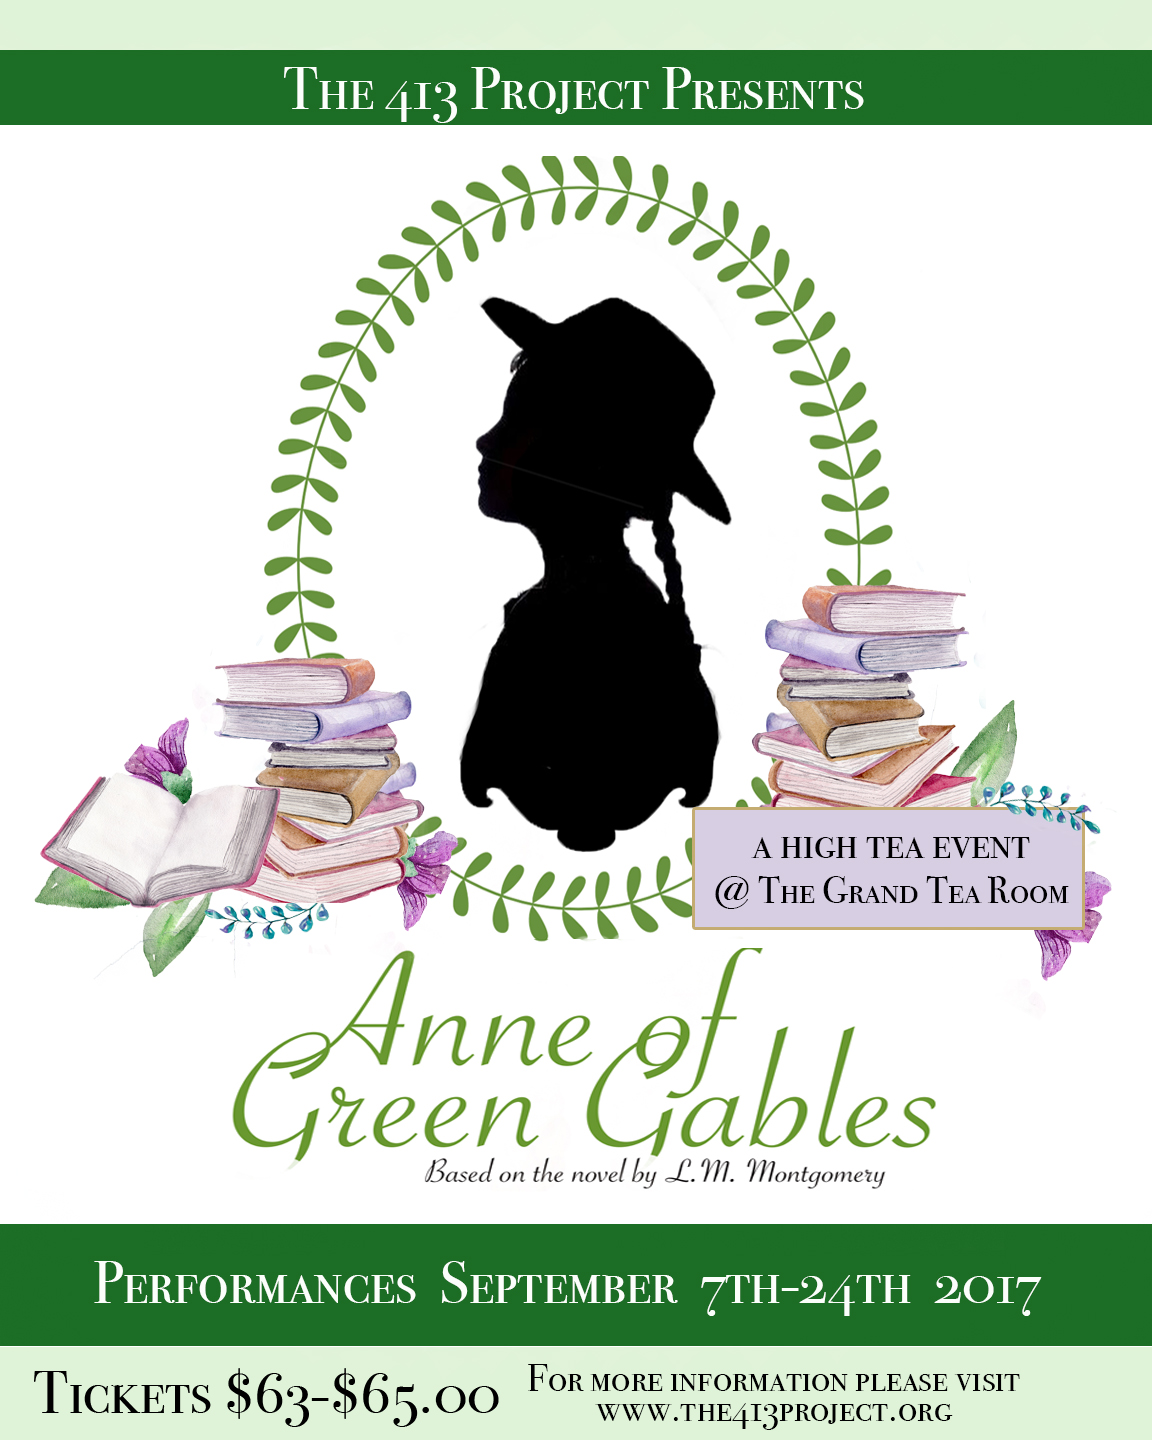 Thegrandtearoom event blog the 413 project brings anne of green gables to the grand tea room this fall monicamarmolfo Image collections